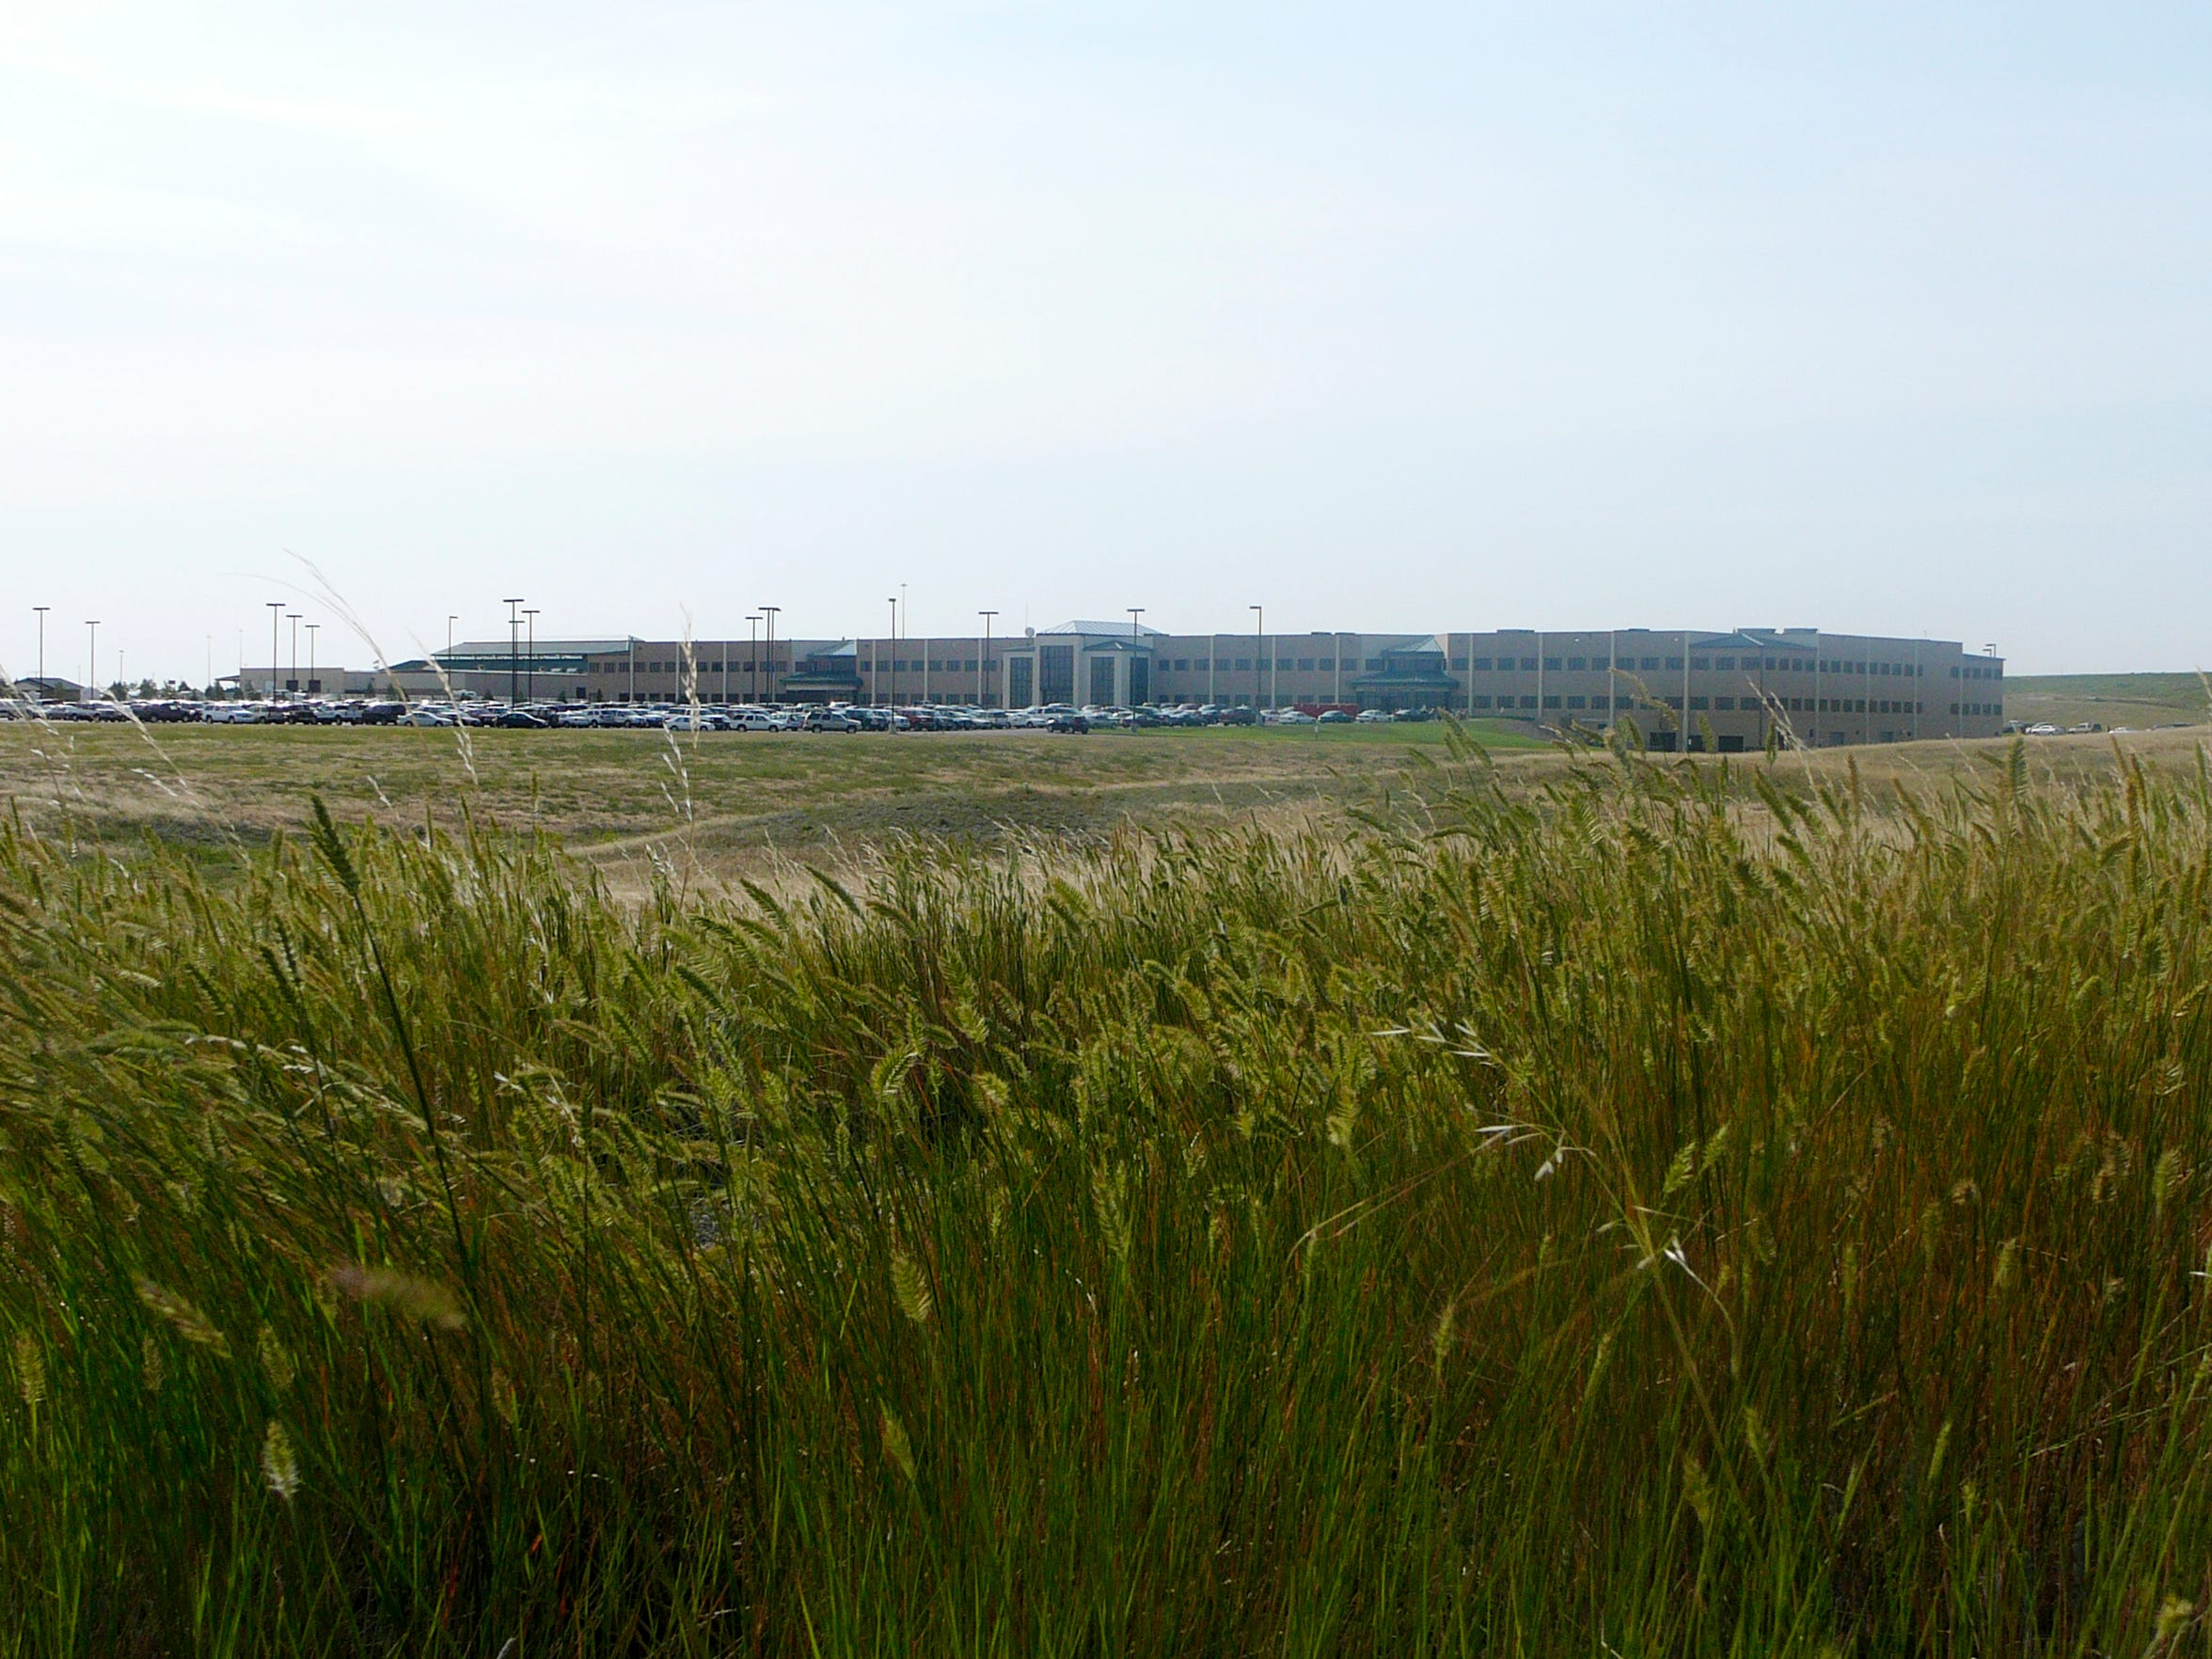 A 2007 photo of the corporate headquarters of Cabela's in Sidney, Nebraska.